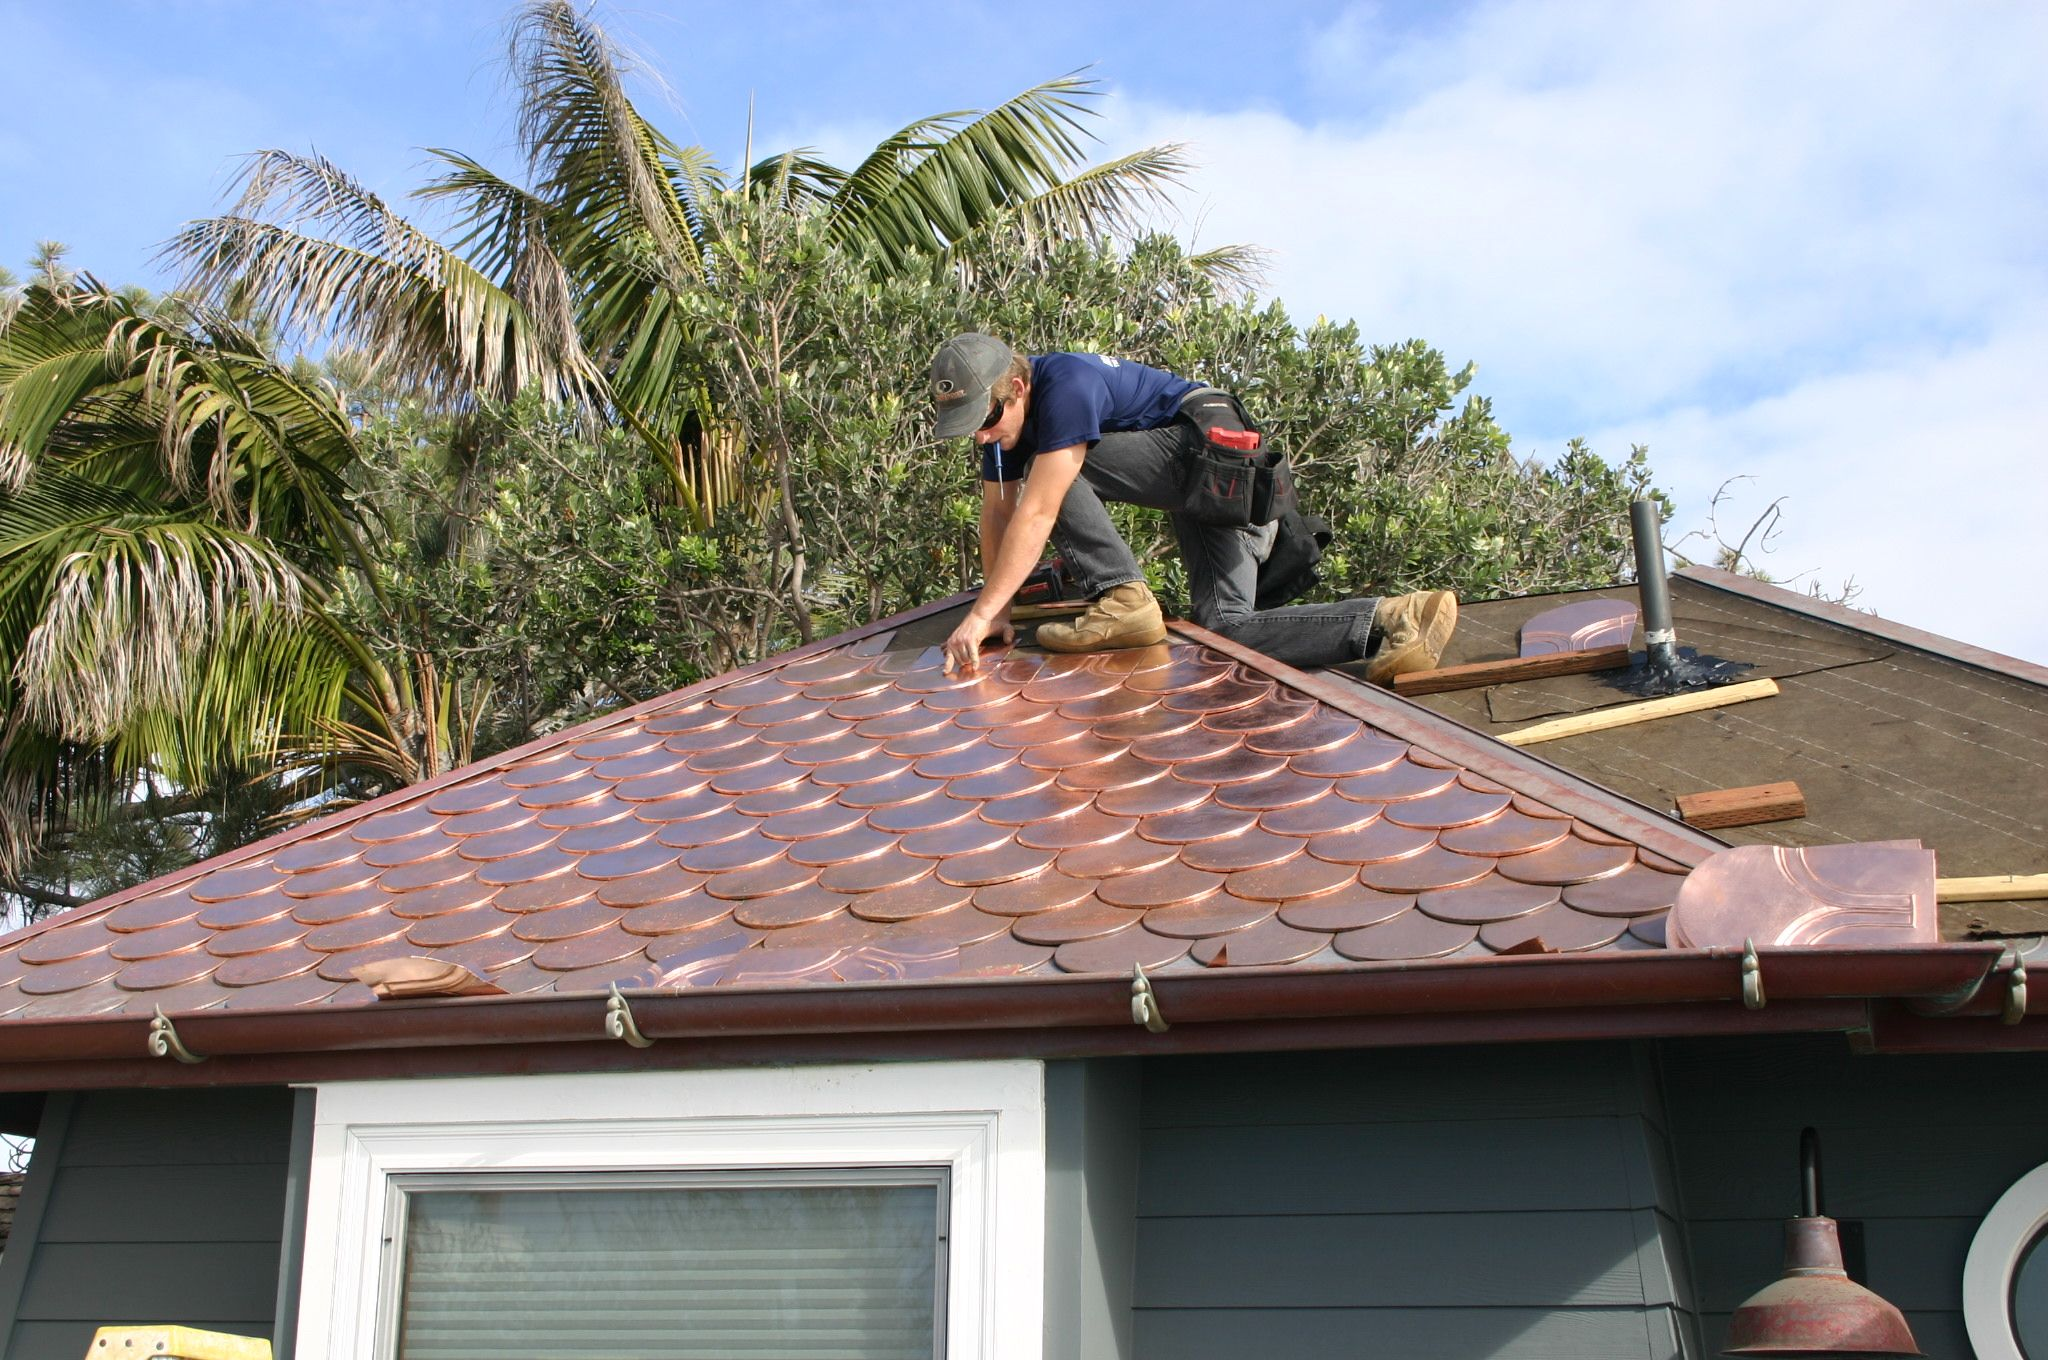 Copper Shingle Roof Roof Shingles Copper Awning Metal Roof